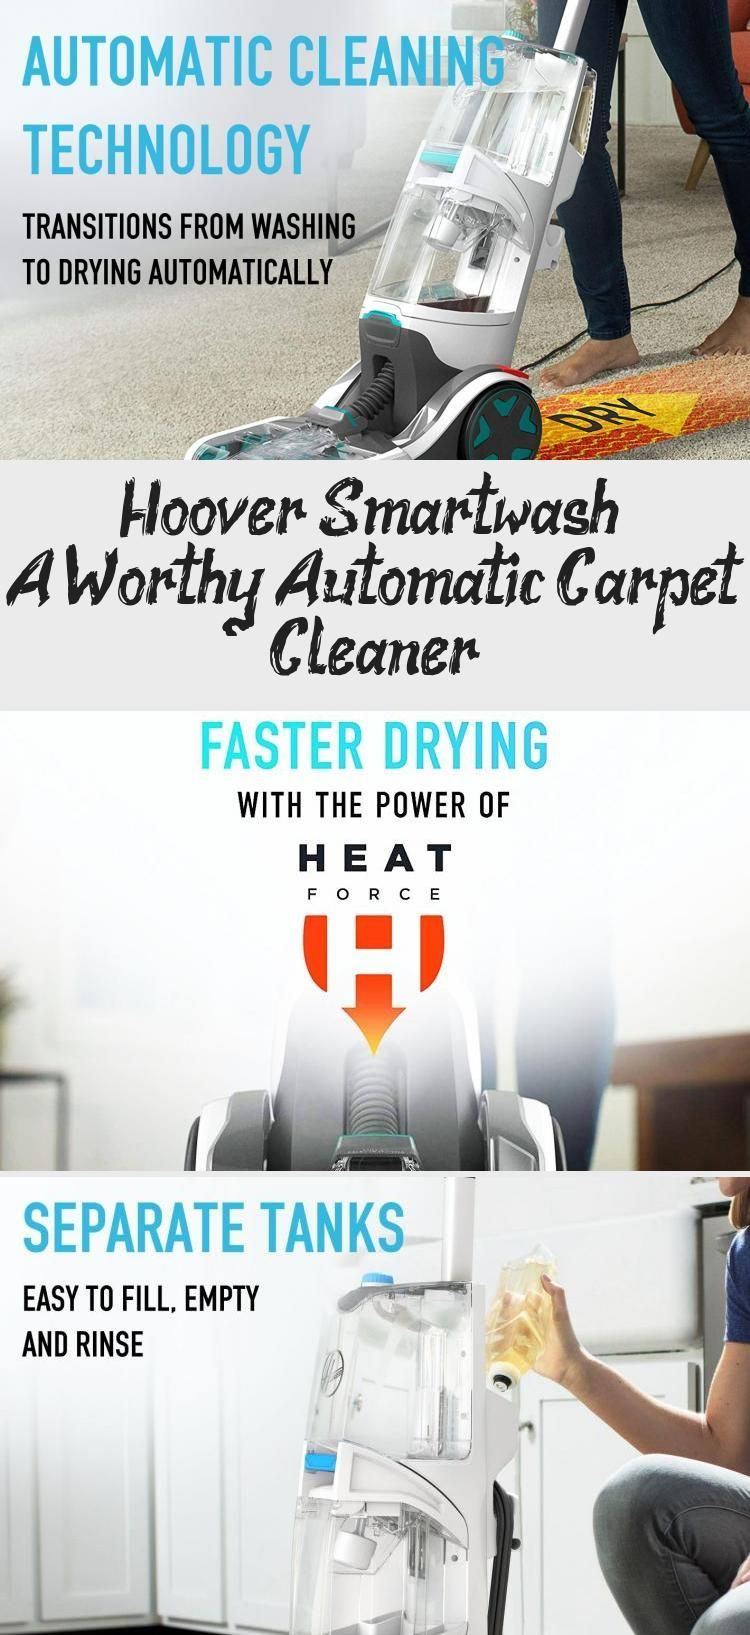 Hoover Smartwash A Worthy Automatic Carpet Cleaner Drycarpetcleaner Carpetcl Autom In 2020 Carpet Cleaners Natural Carpet Cleaners Carpet Cleaner Vacuum